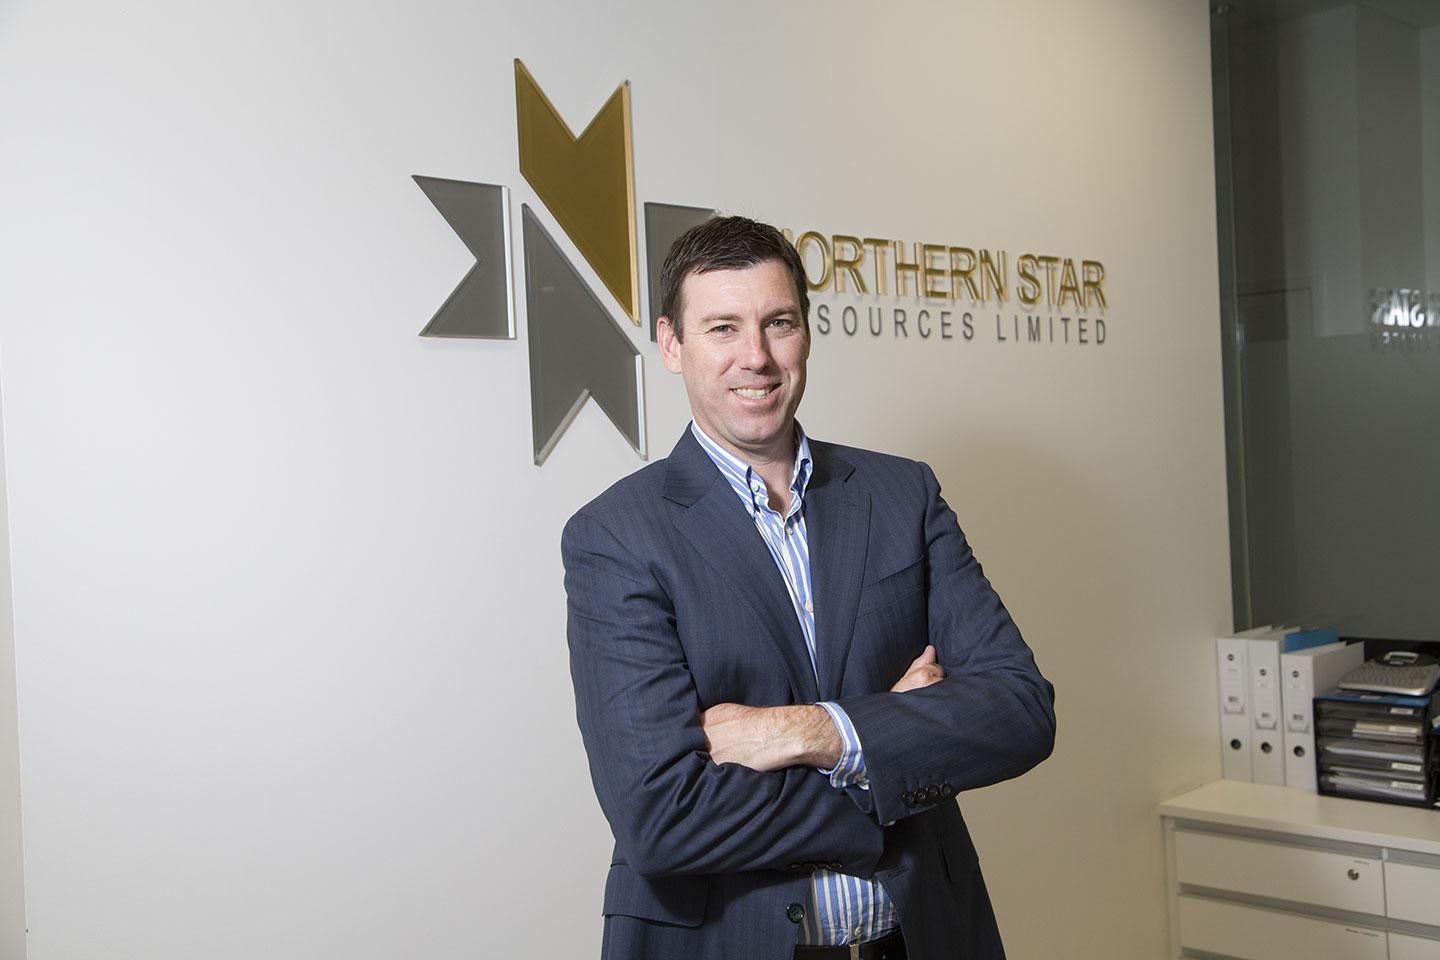 Northern Star lobs $150m deal to Tribune, Rand